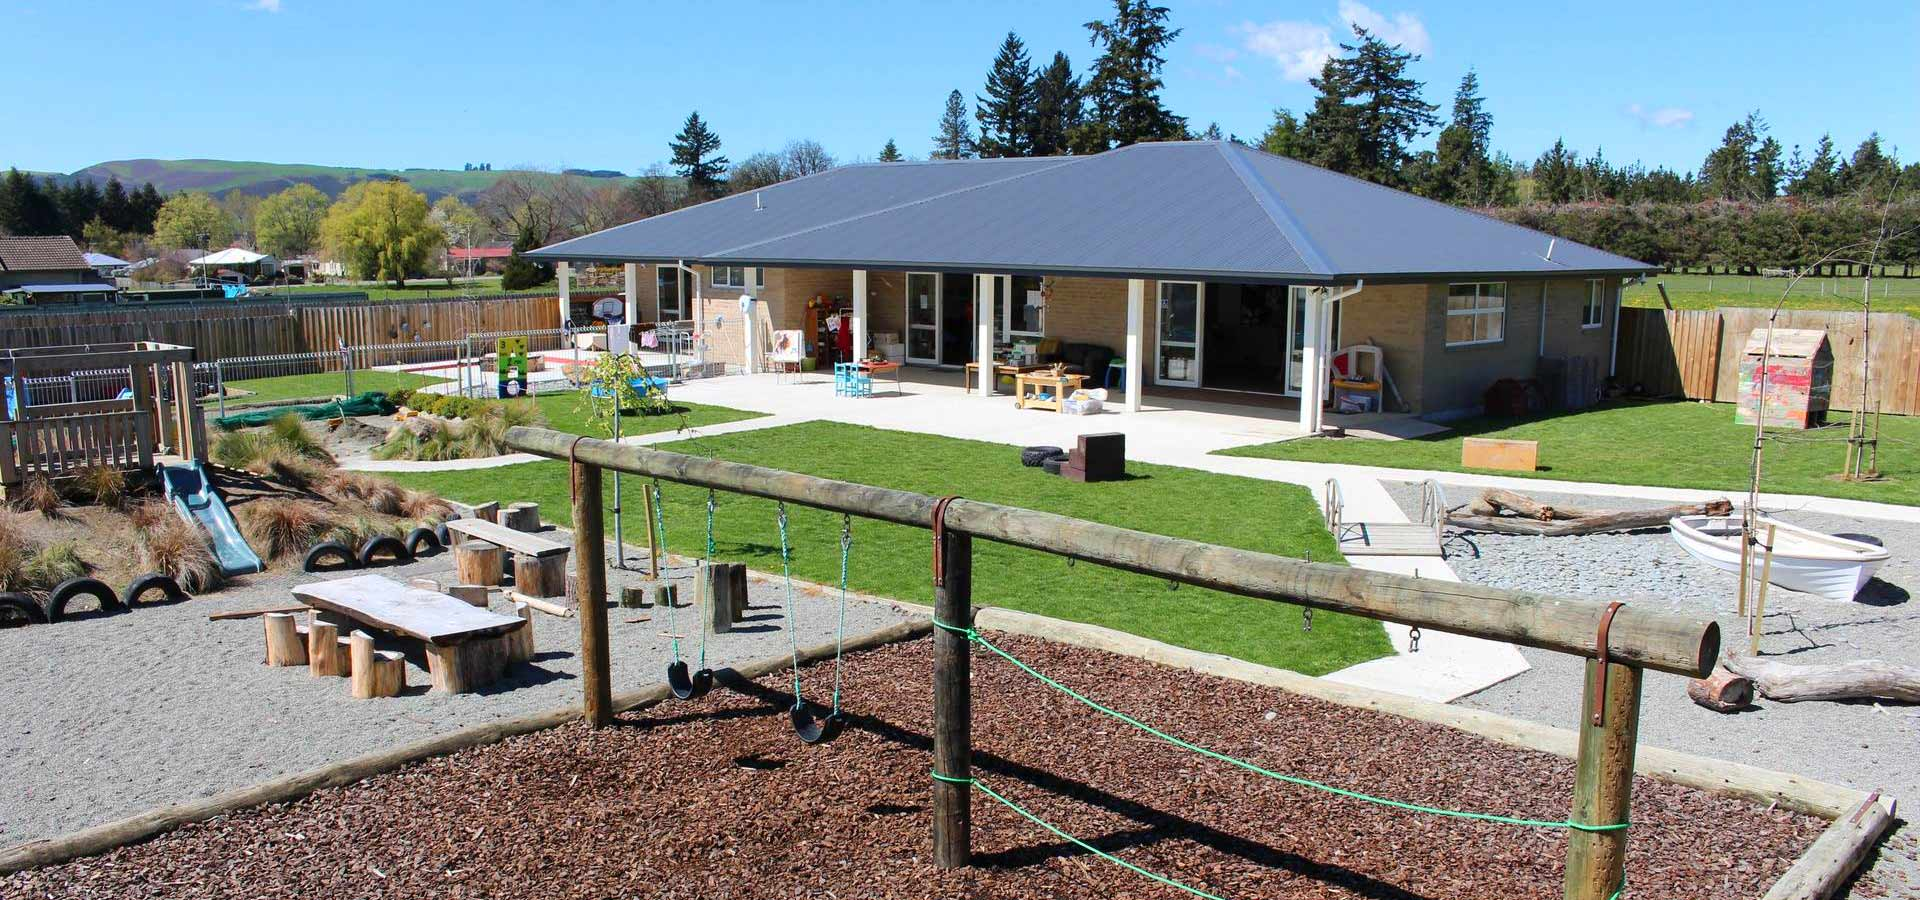 Fairlie Early Learners Preschool and Nursery in Fairlie, New Zealand